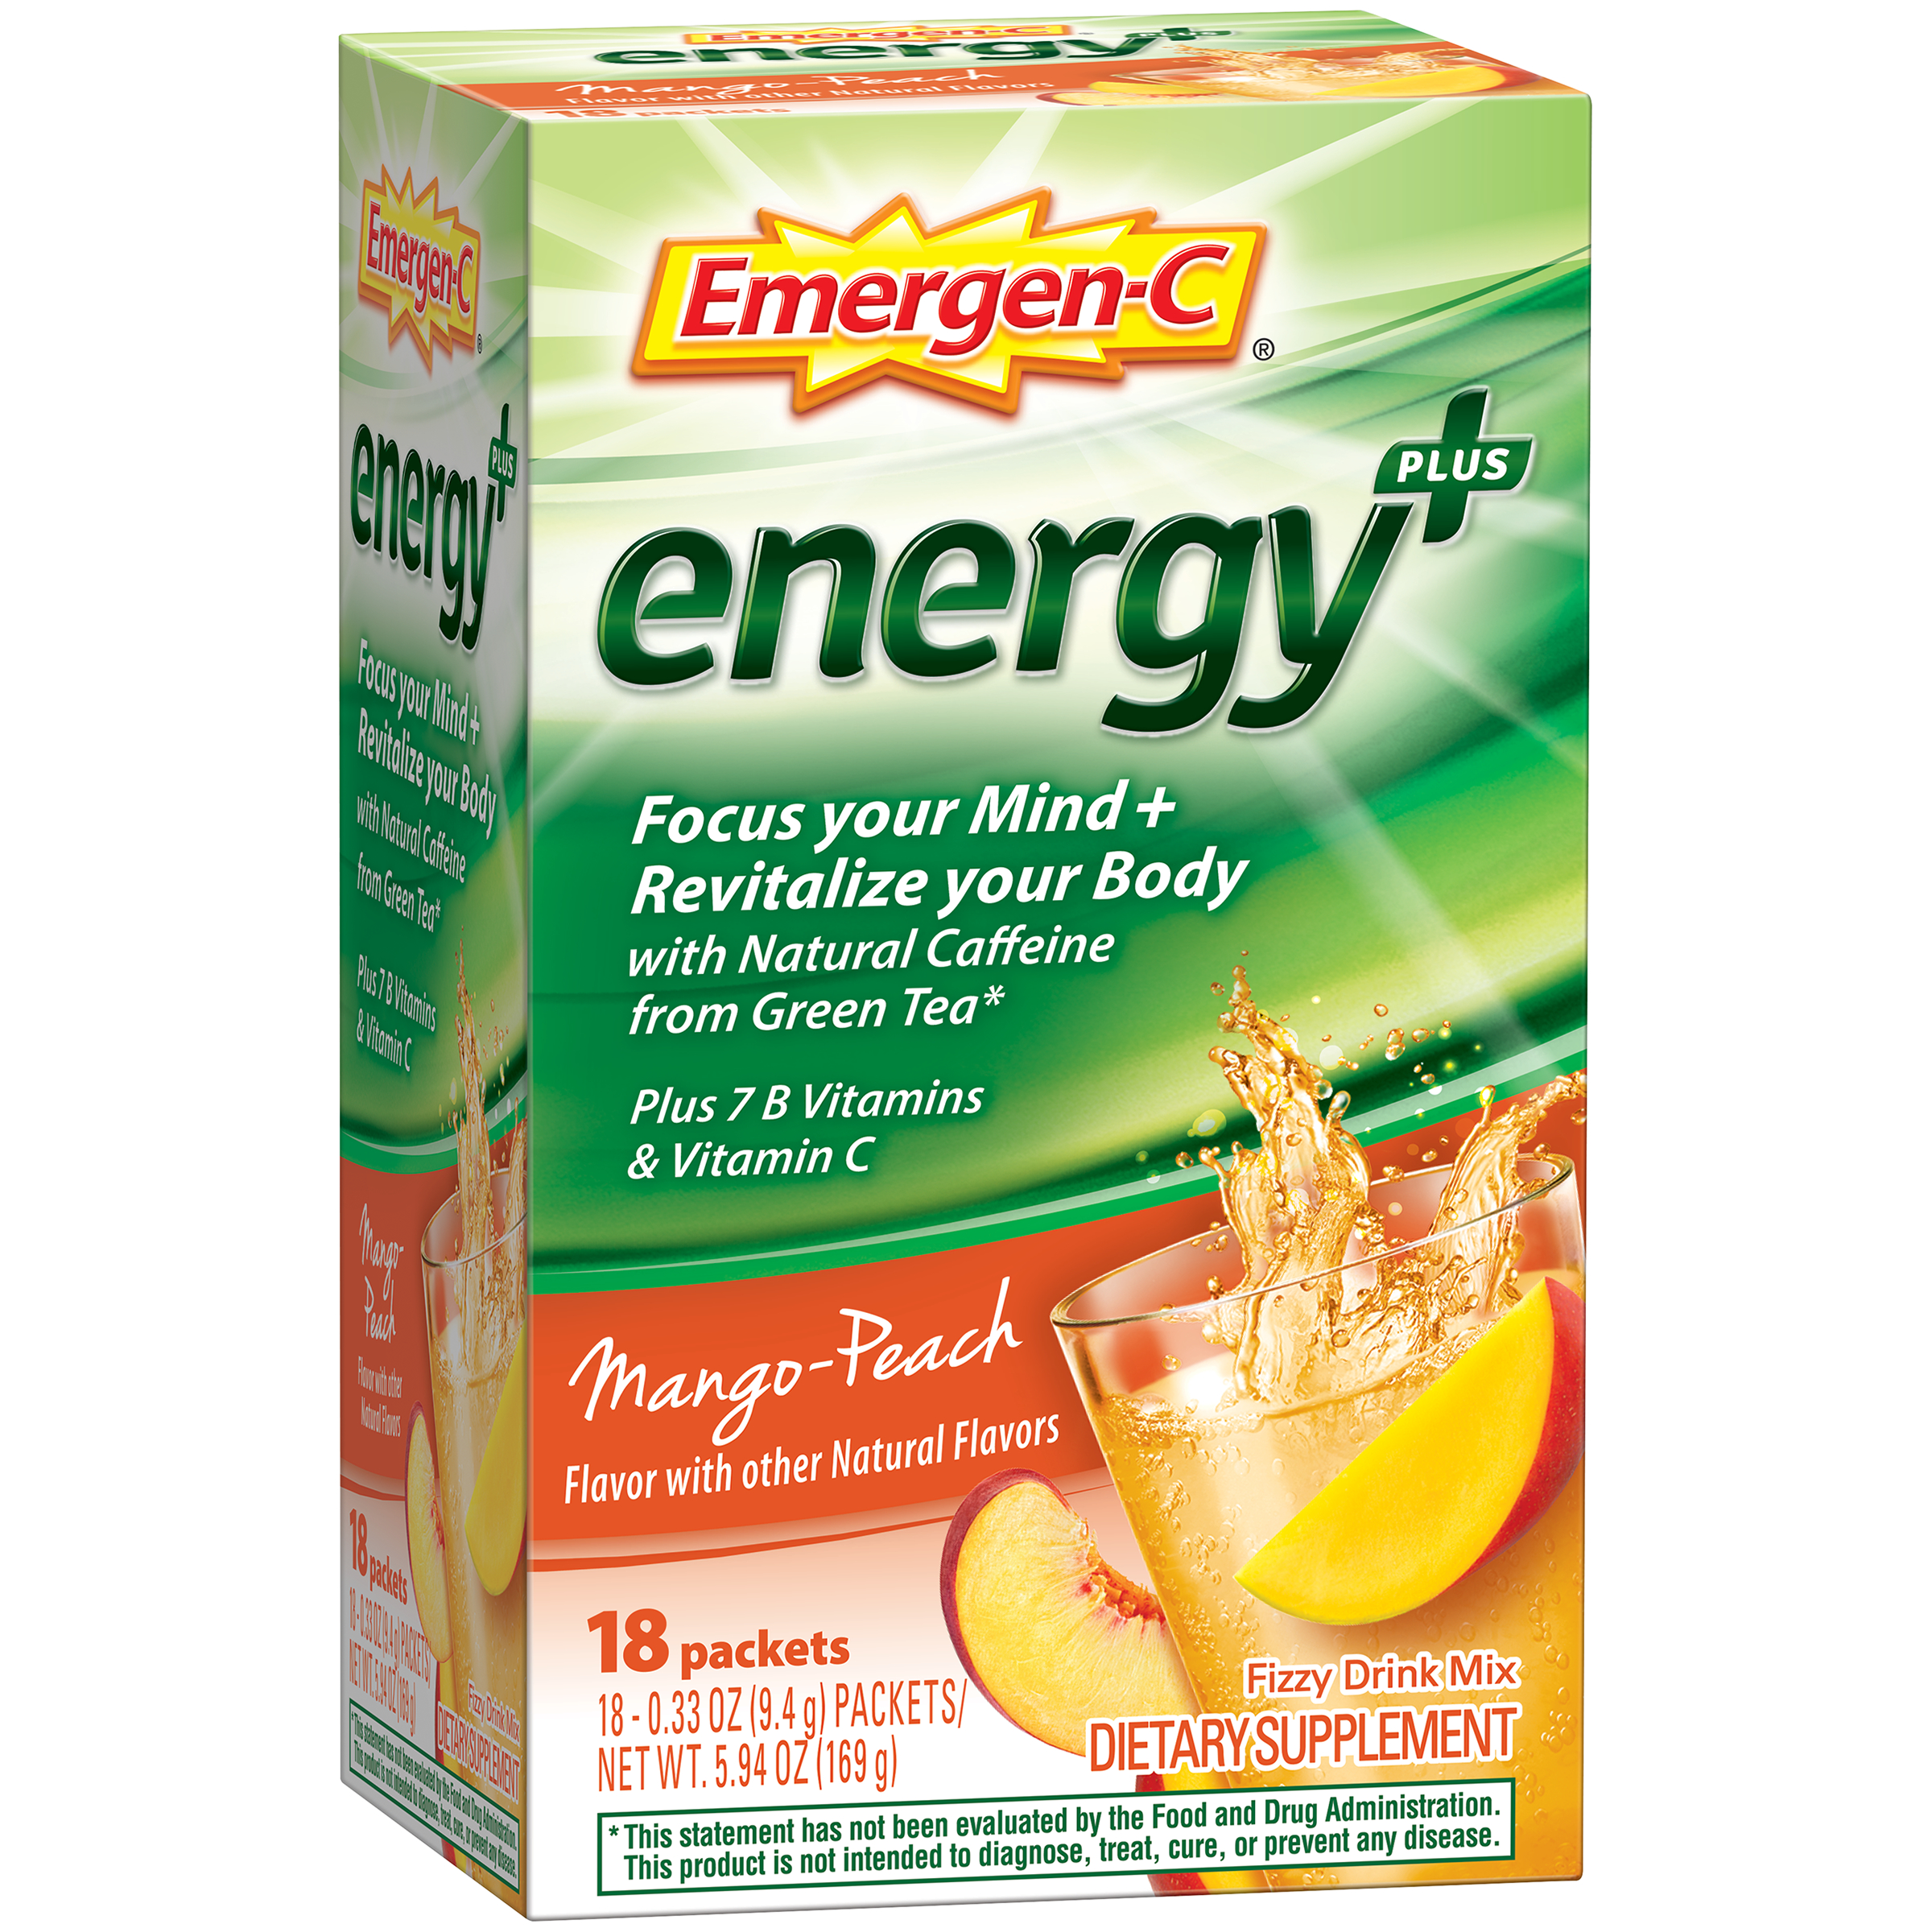 Emergen-C Energy+ (18 Count, Mango-Peach Flavor) Dietary Supplement Drink Mix with Caffeine, 0.33 Ounce Packets